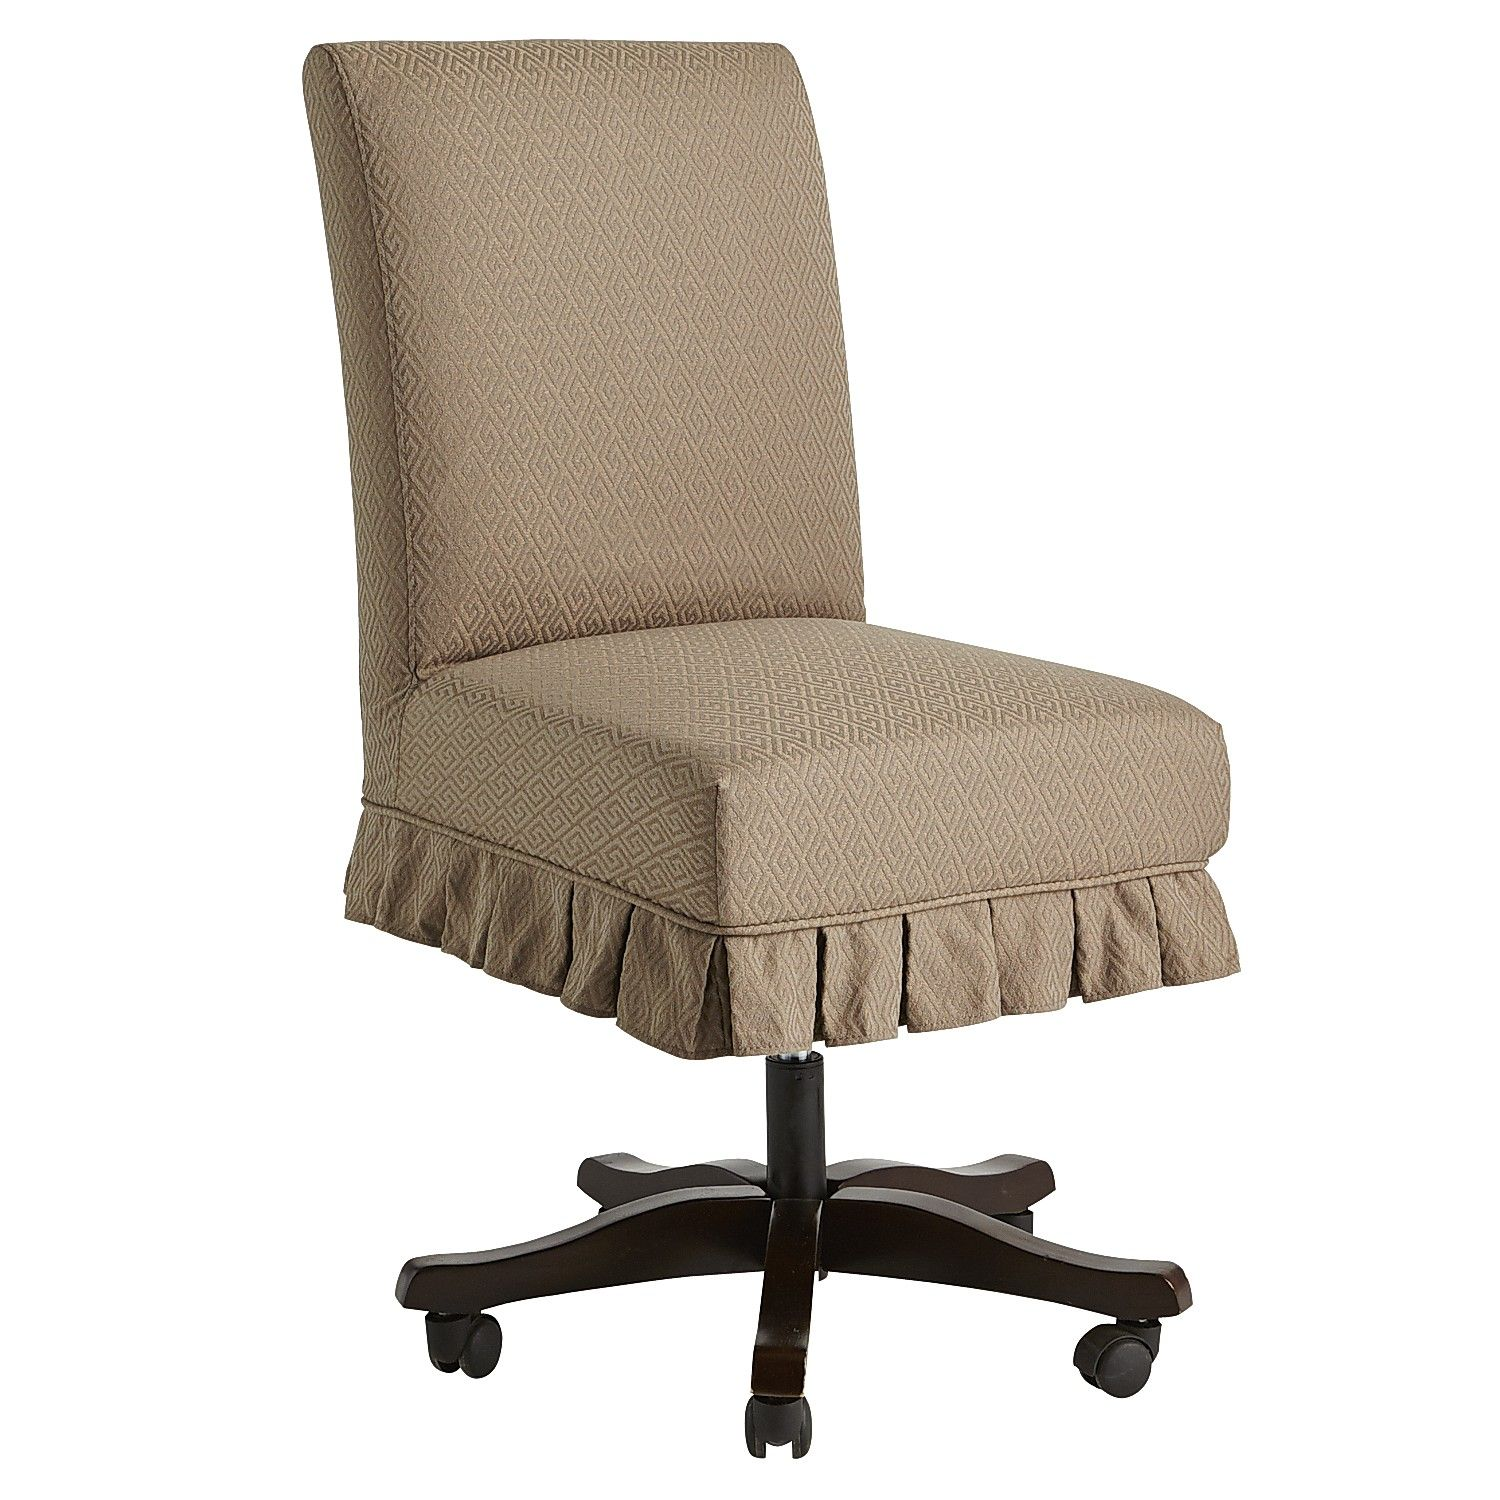 Dana Office Chair Slipcover Dove Slipcovers for chairs